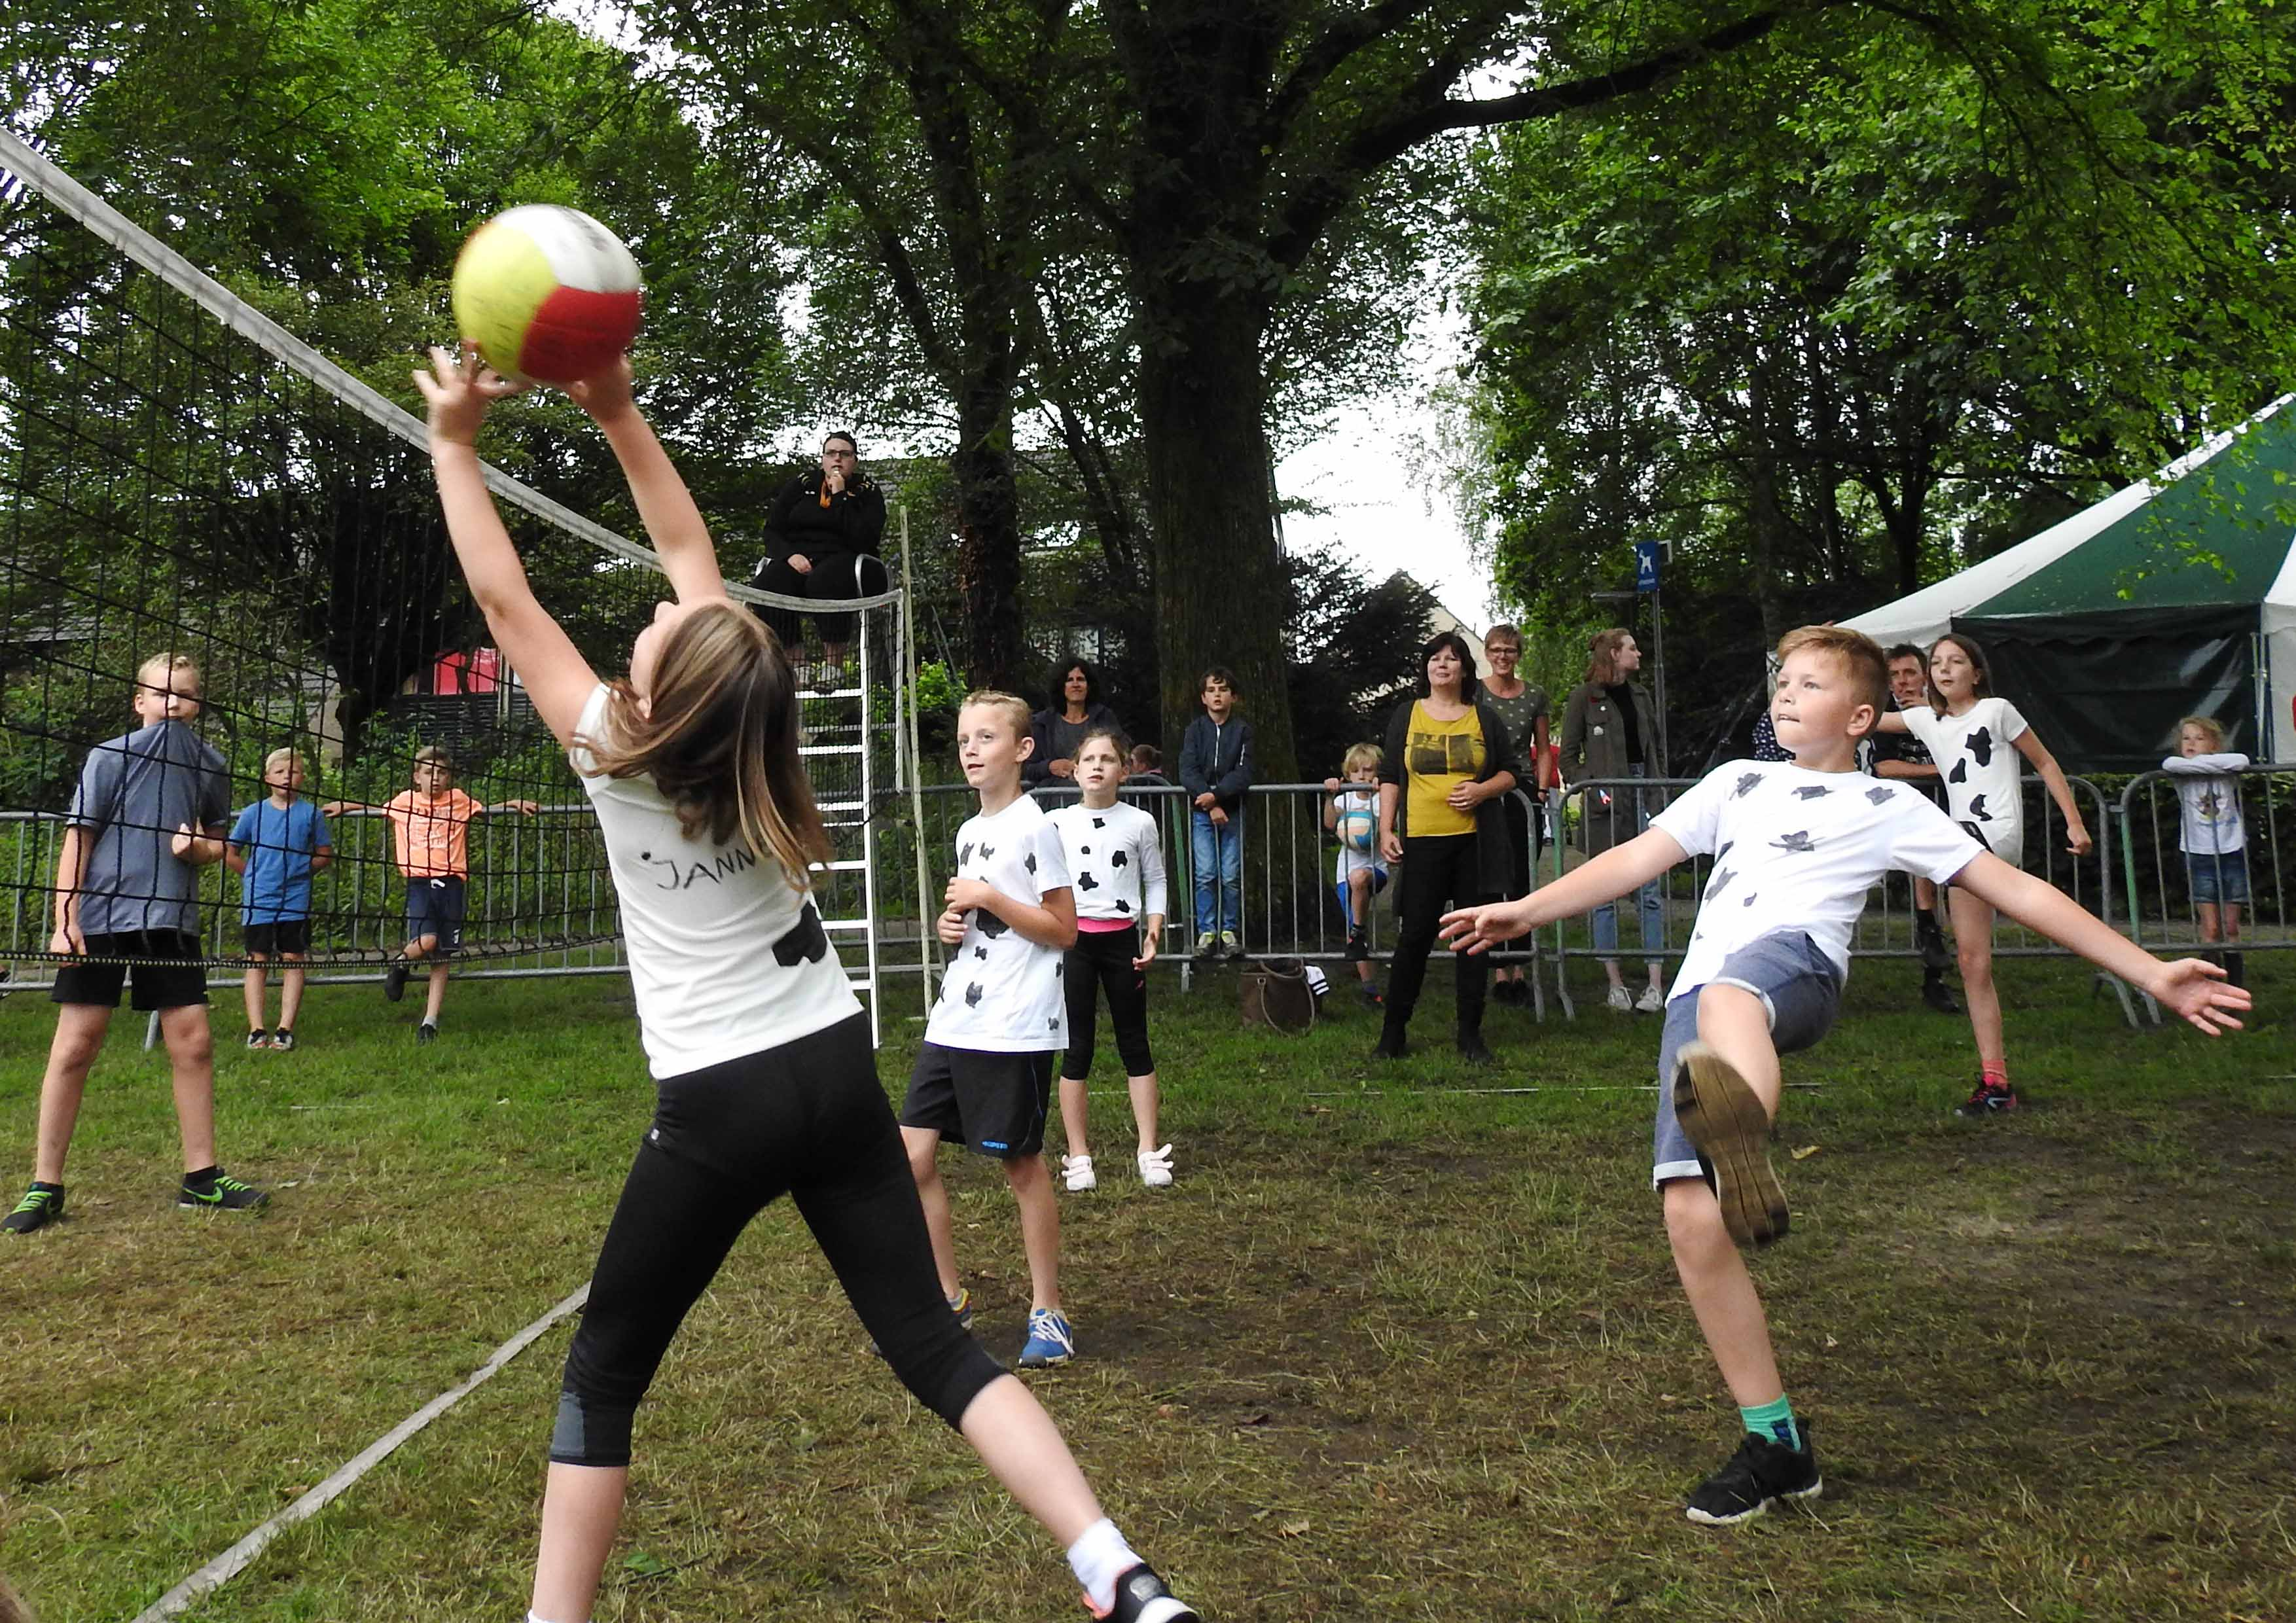 2017-06-29_BB_Straatvolleybal (03)